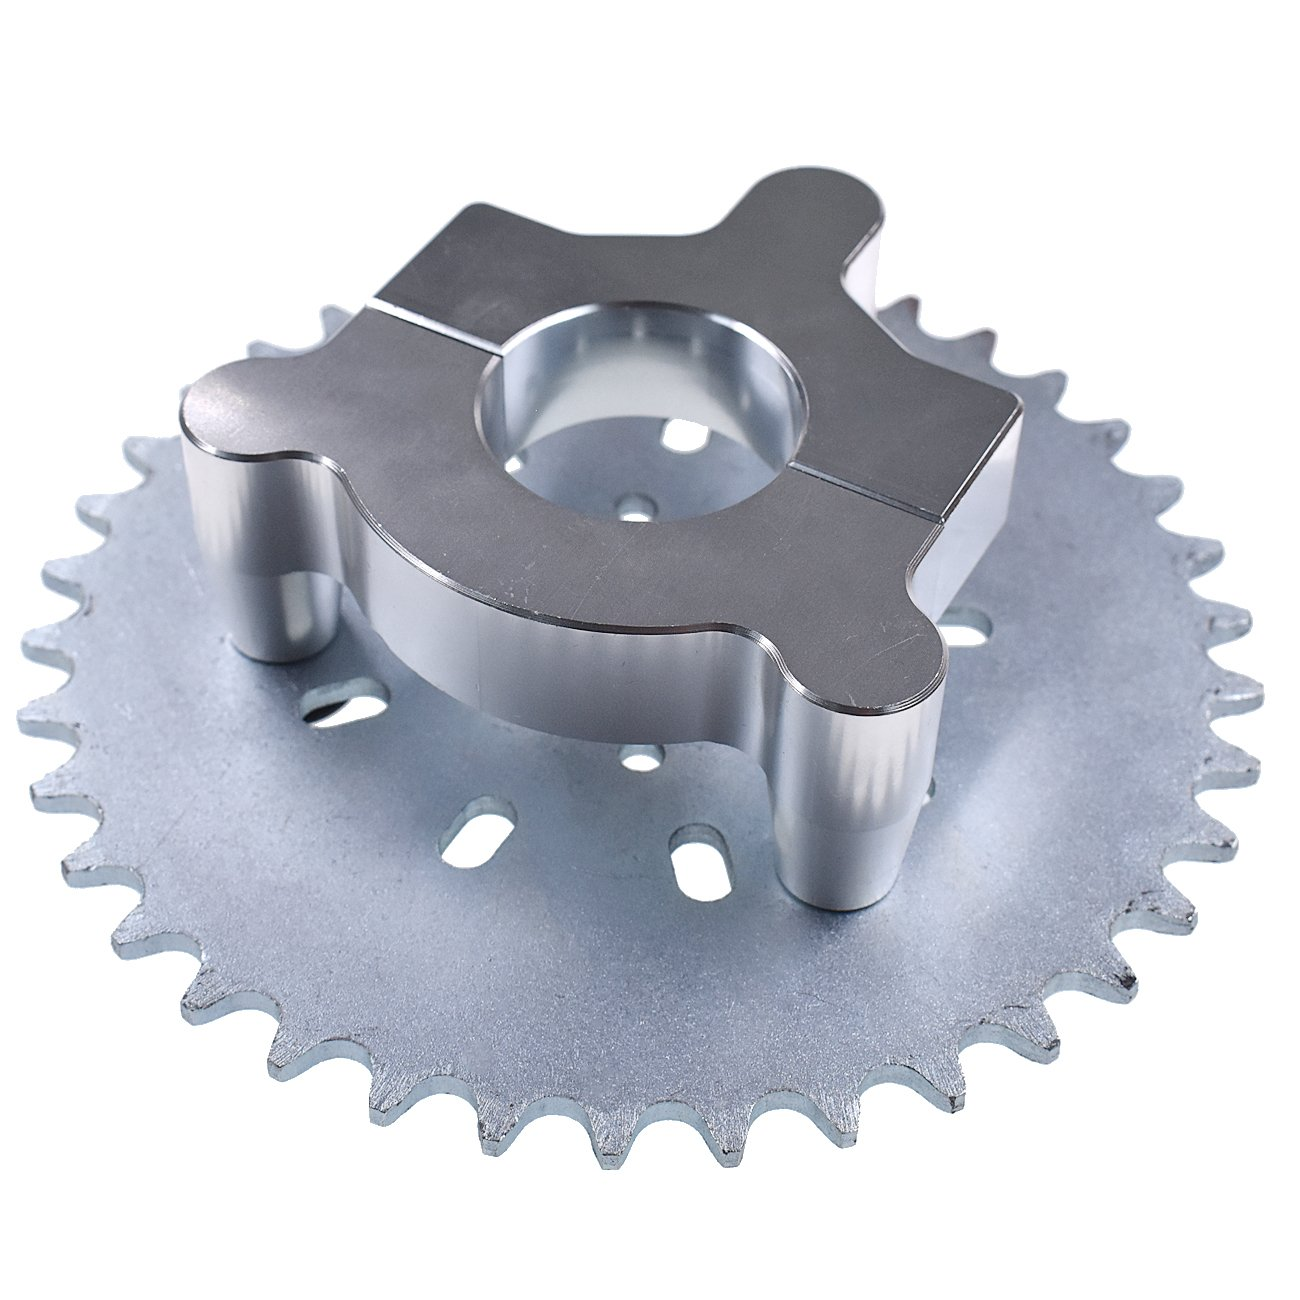 NORTHTIGER 38T Sprocket Adapter Fit 415 Chain 49cc 50cc 66cc 80cc 2 Stroke Motorized Bike